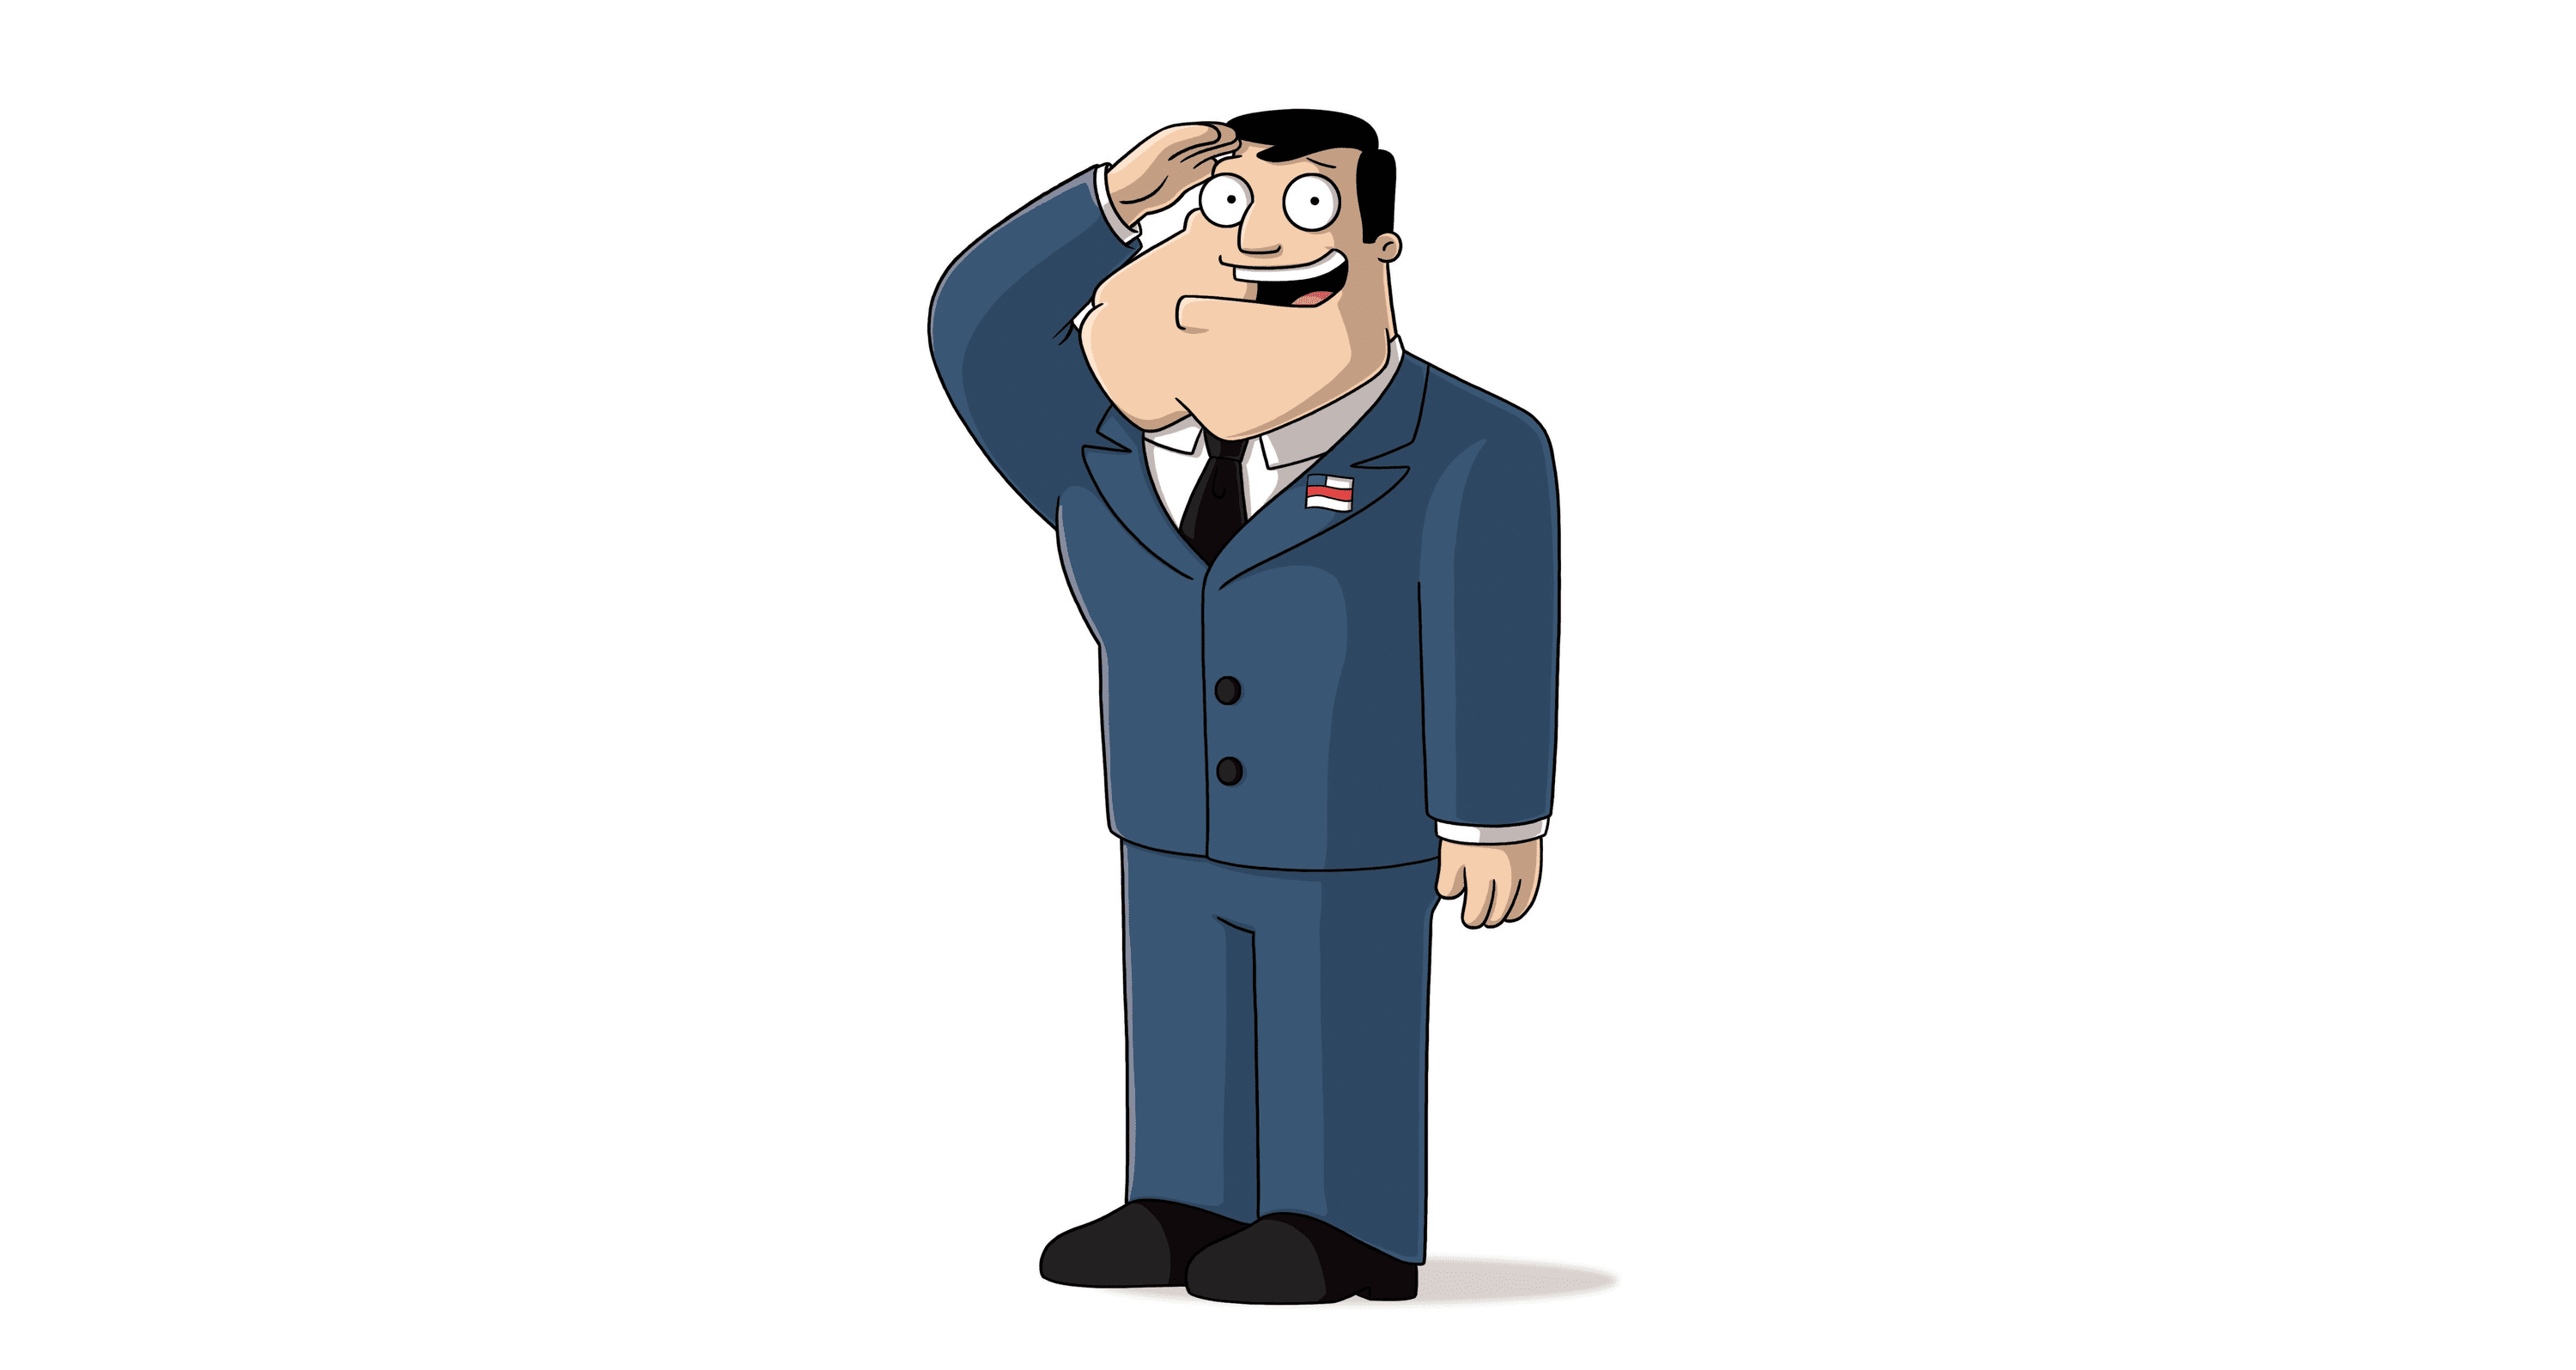 American Dad meet the characters in 'american dad!'